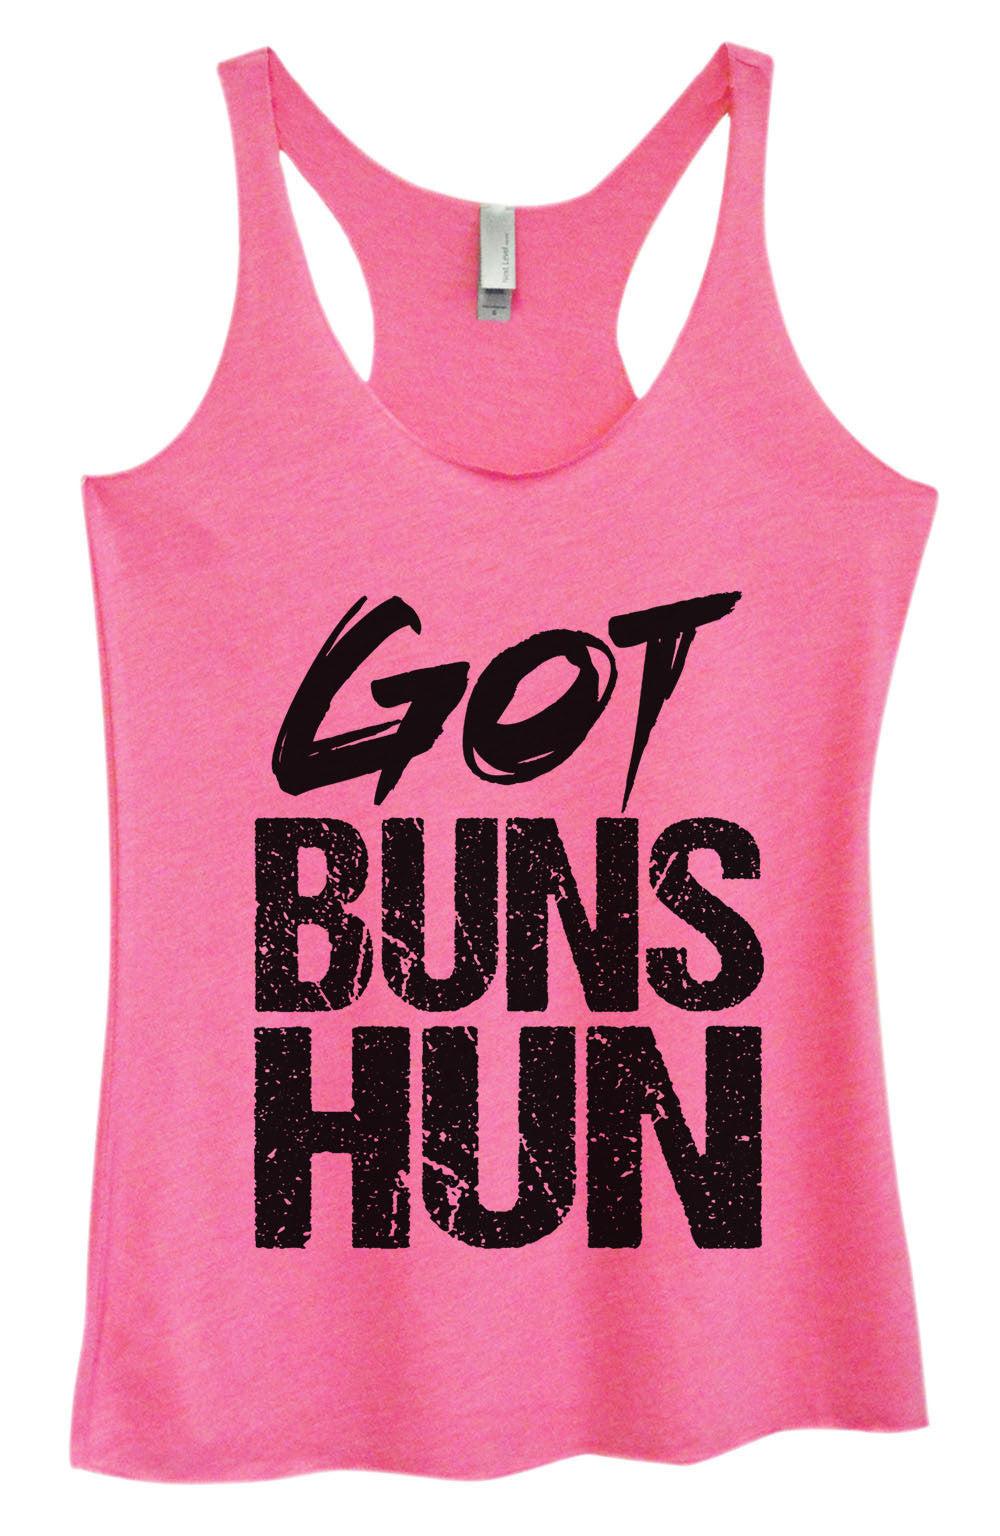 Womens Fashion Triblend Tank Top - Got Buns Hun - Tri-1006 - Funny Shirts Tank Tops Burnouts and Triblends  - 4